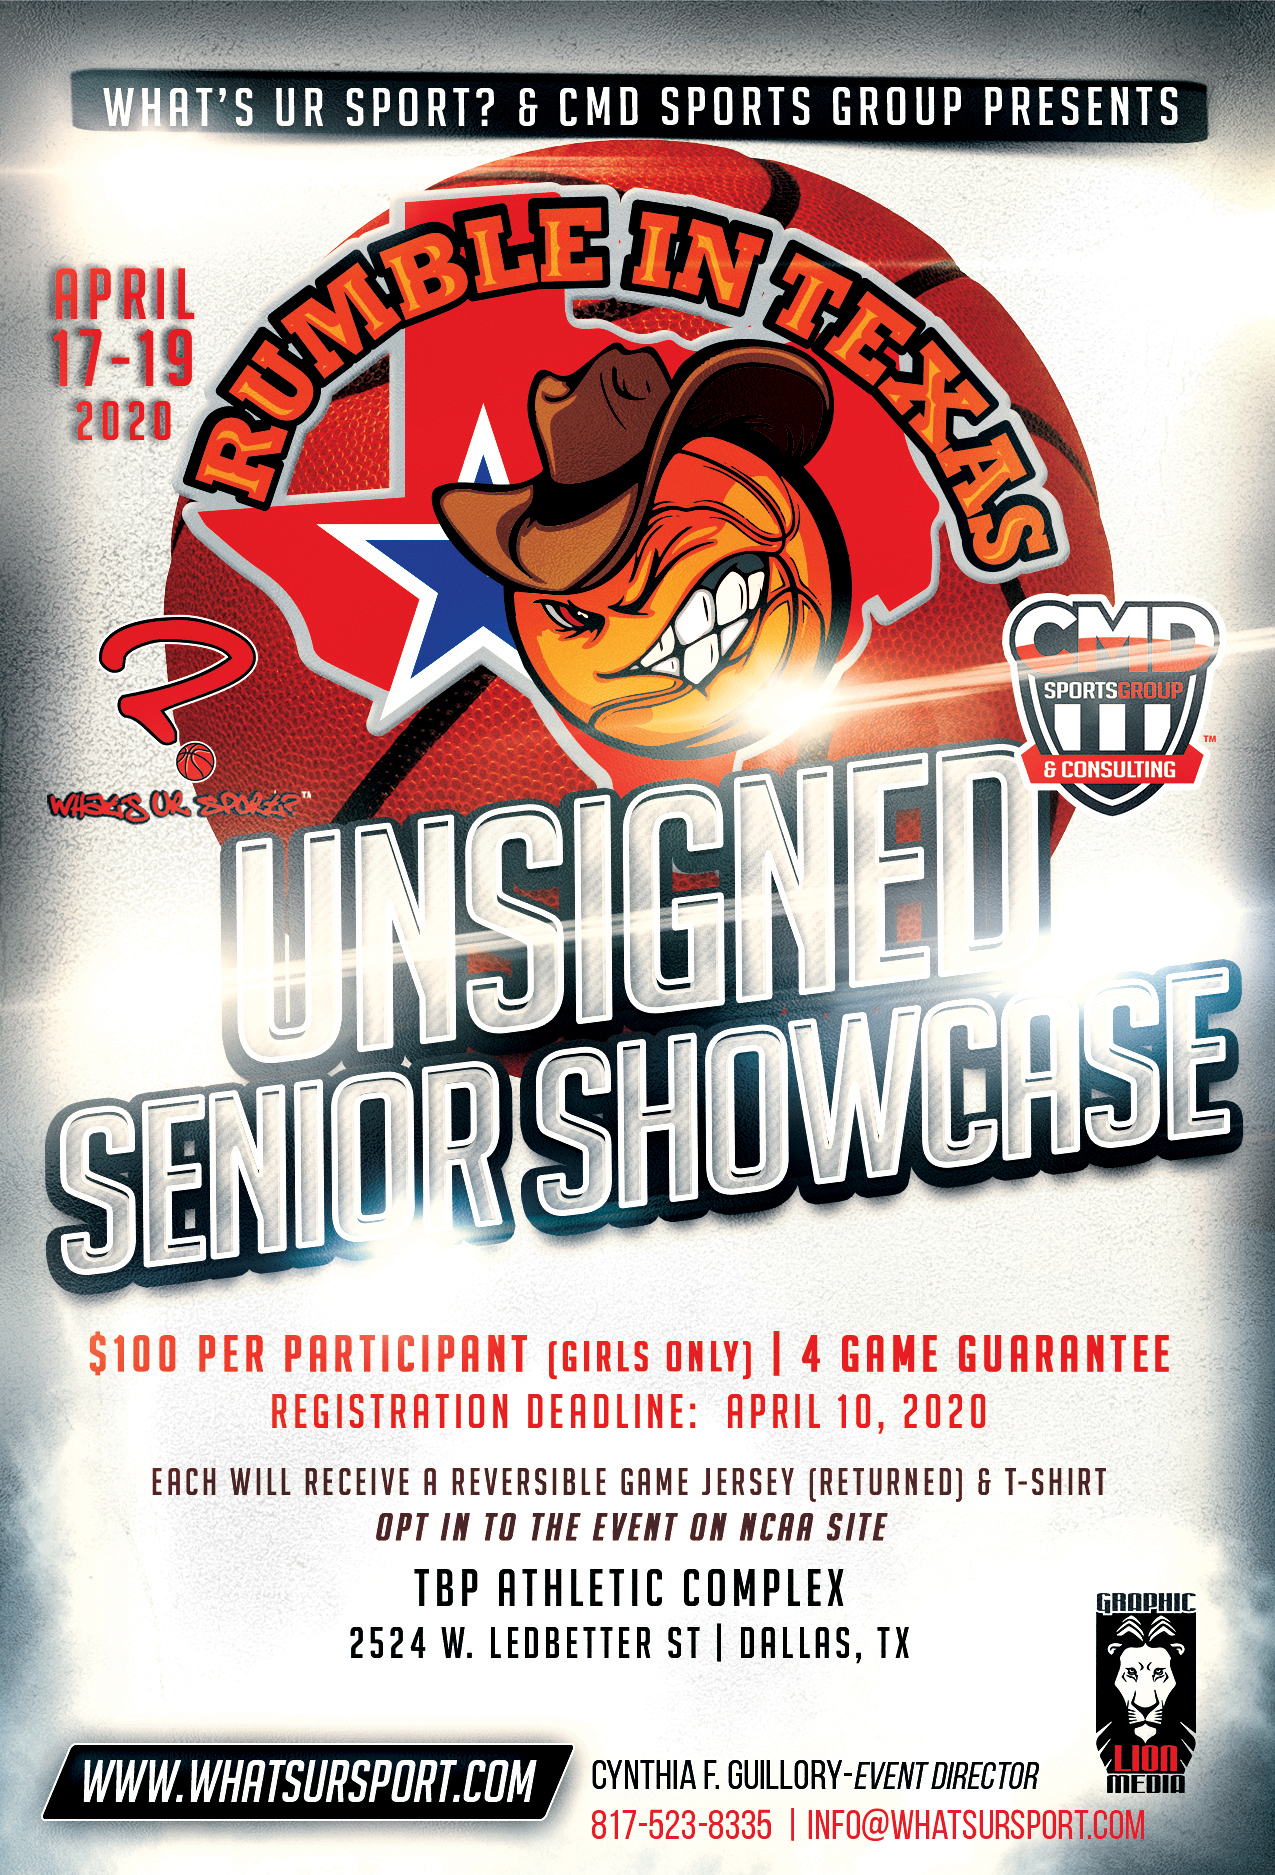 Rumble in Texas Unsigned Senior Showcase